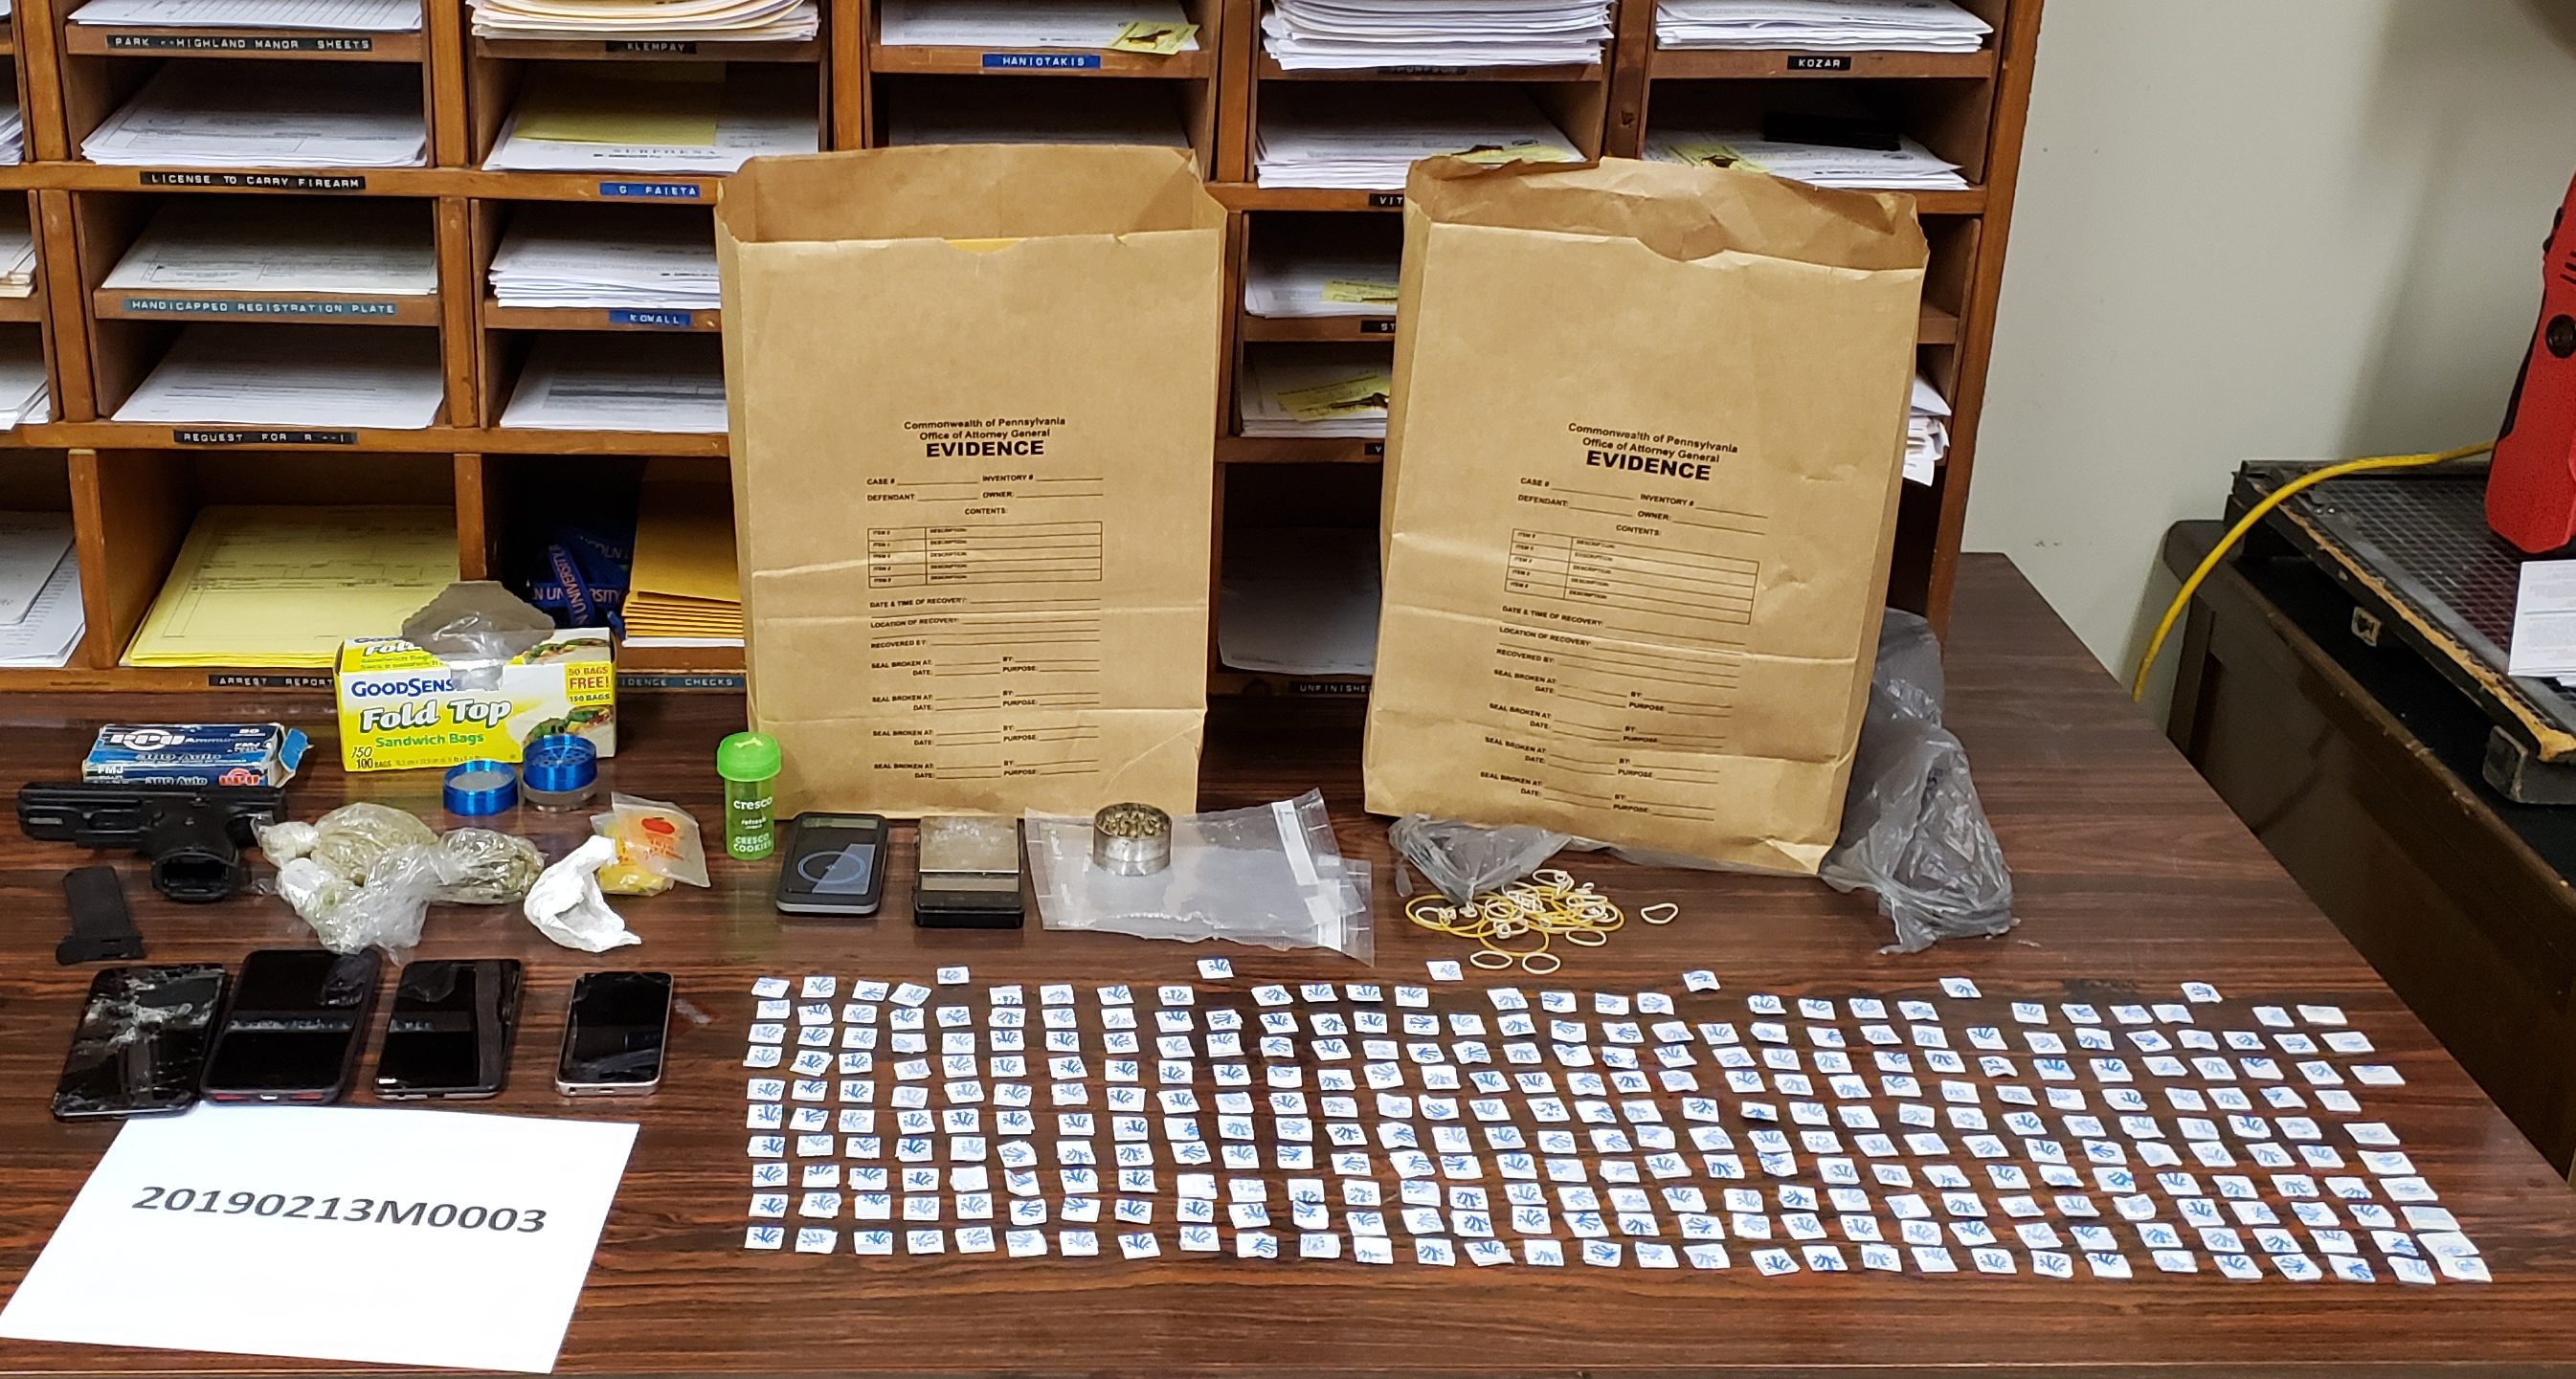 Two jailed in Monessen drug bust - The Mon Valley Independent